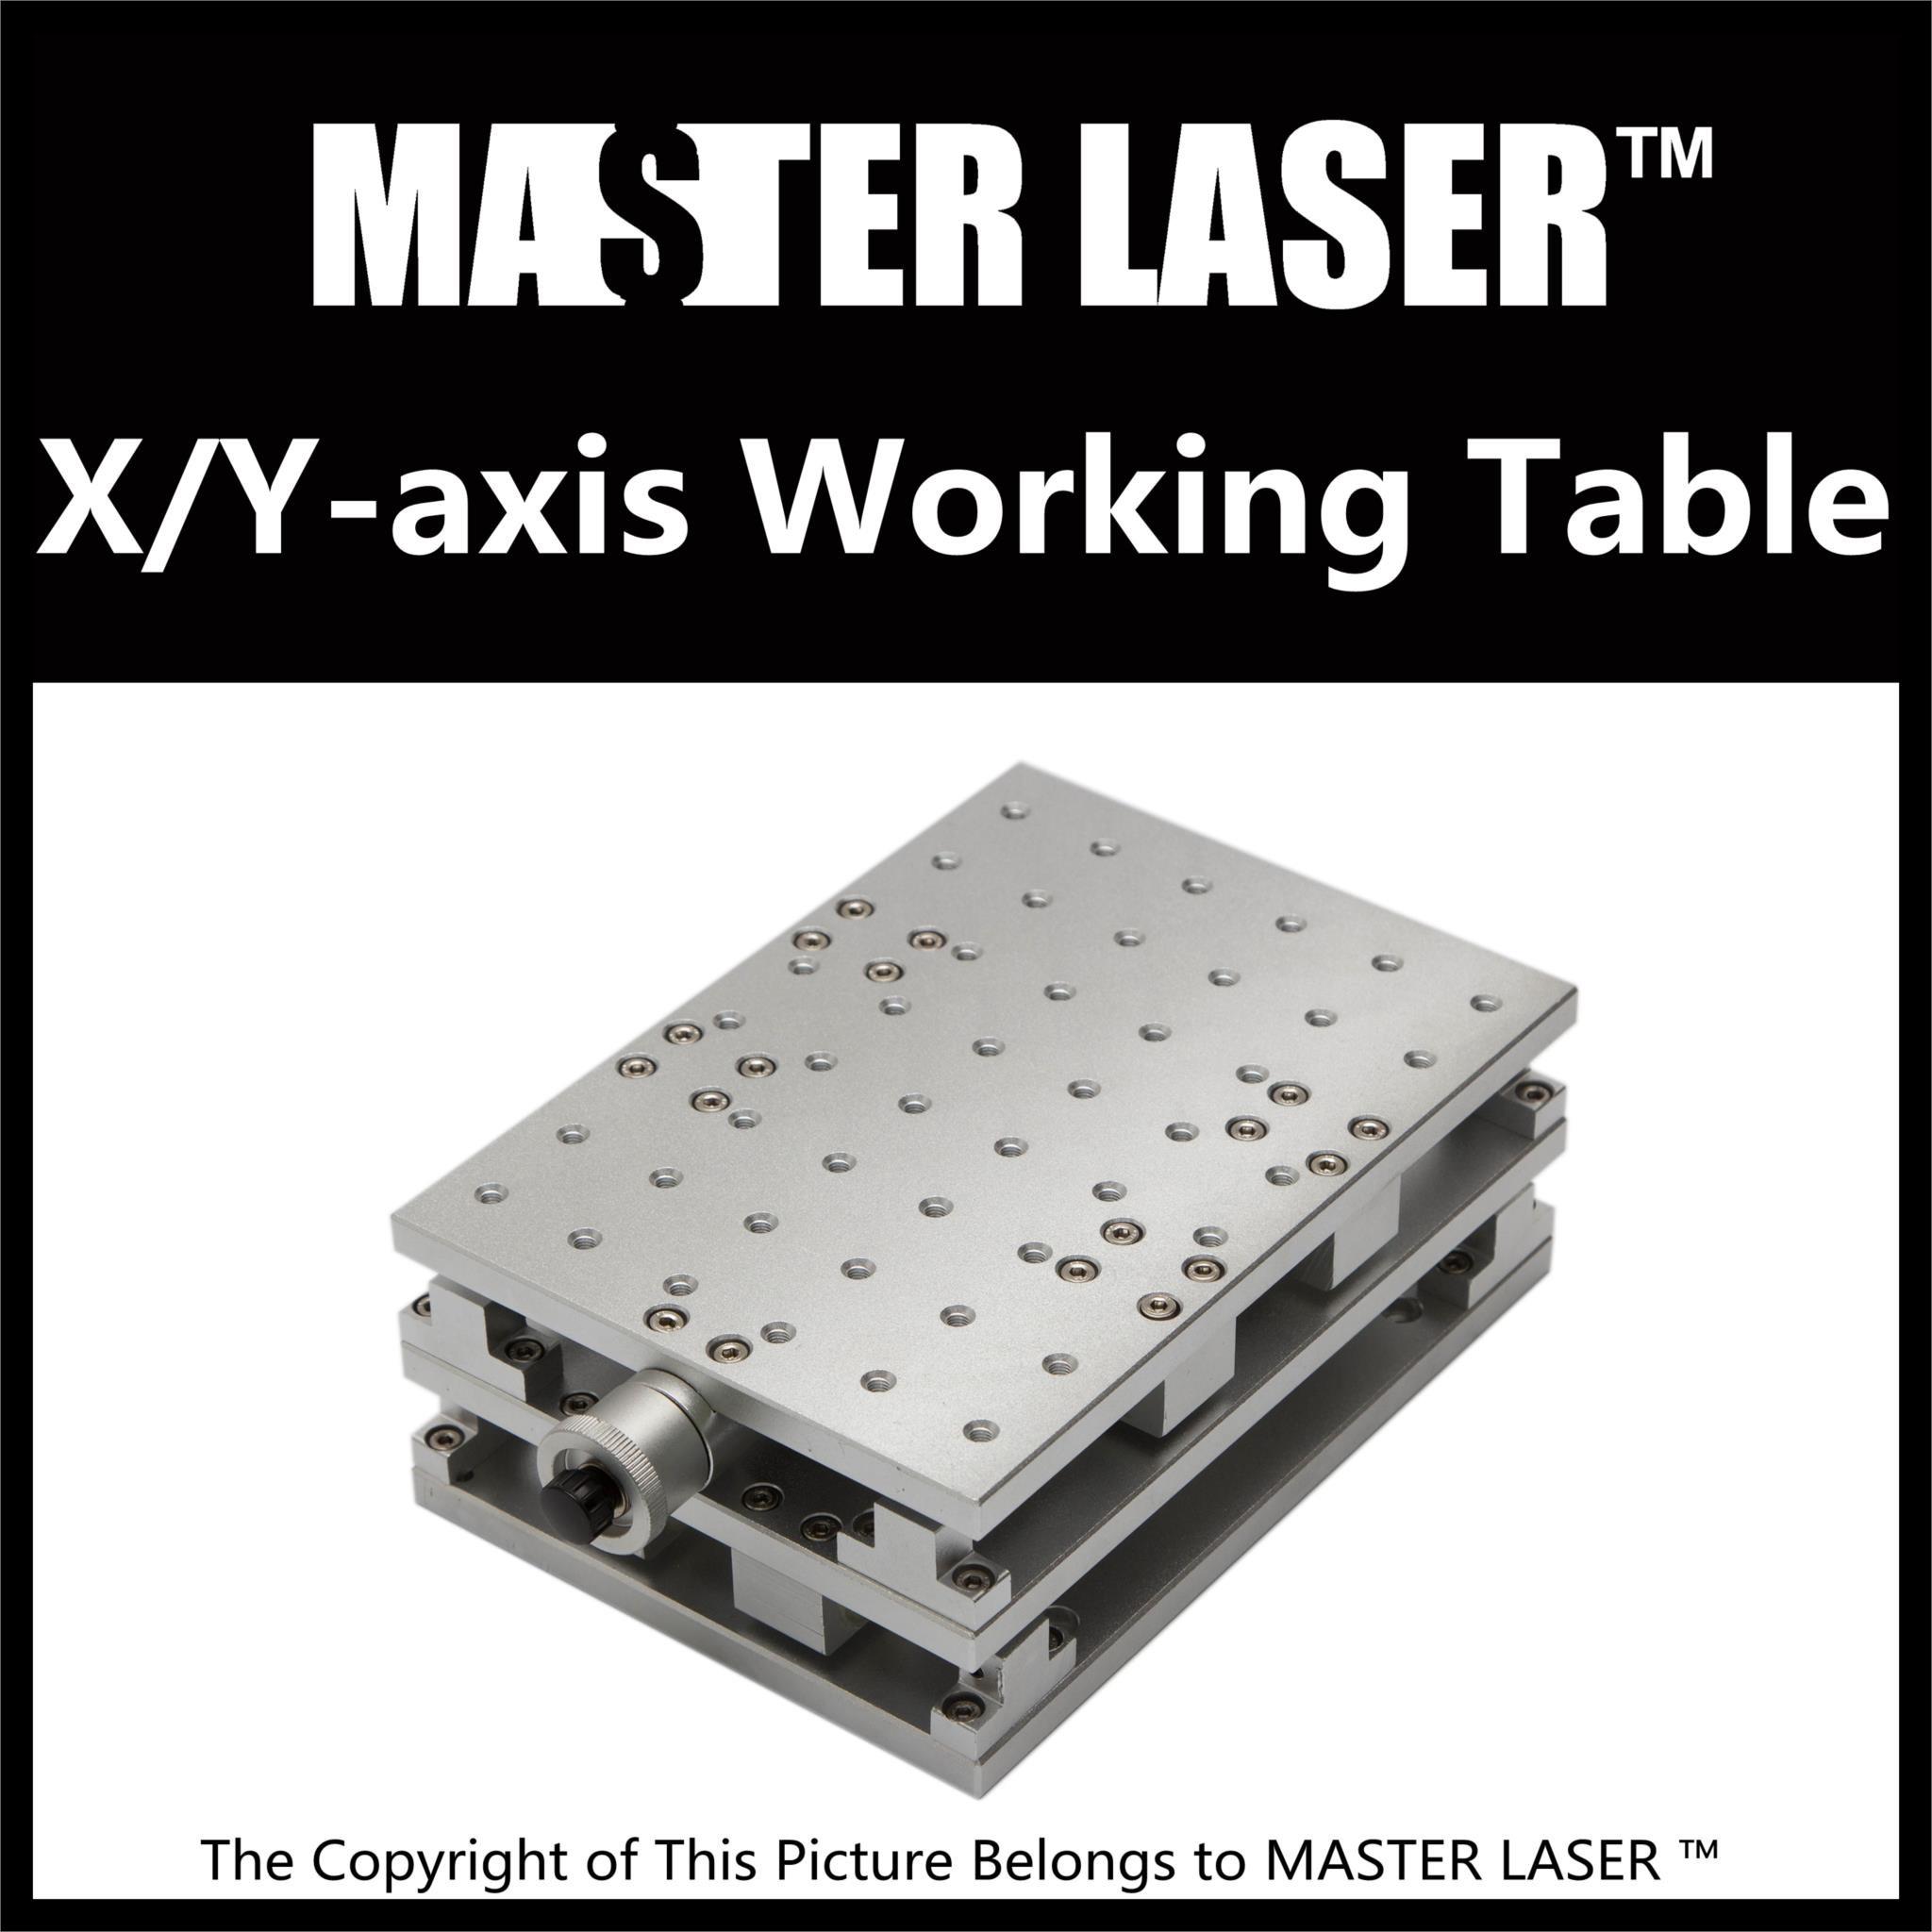 1064nm Fiber Laser Marking Engraving Machine  2 Axis Moving Table 300*220mm Working Size Portable Cabinet Case XY Table economic al case of 1064nm fiber laser machine parts for laser machine beam combiner mirror mount light path system